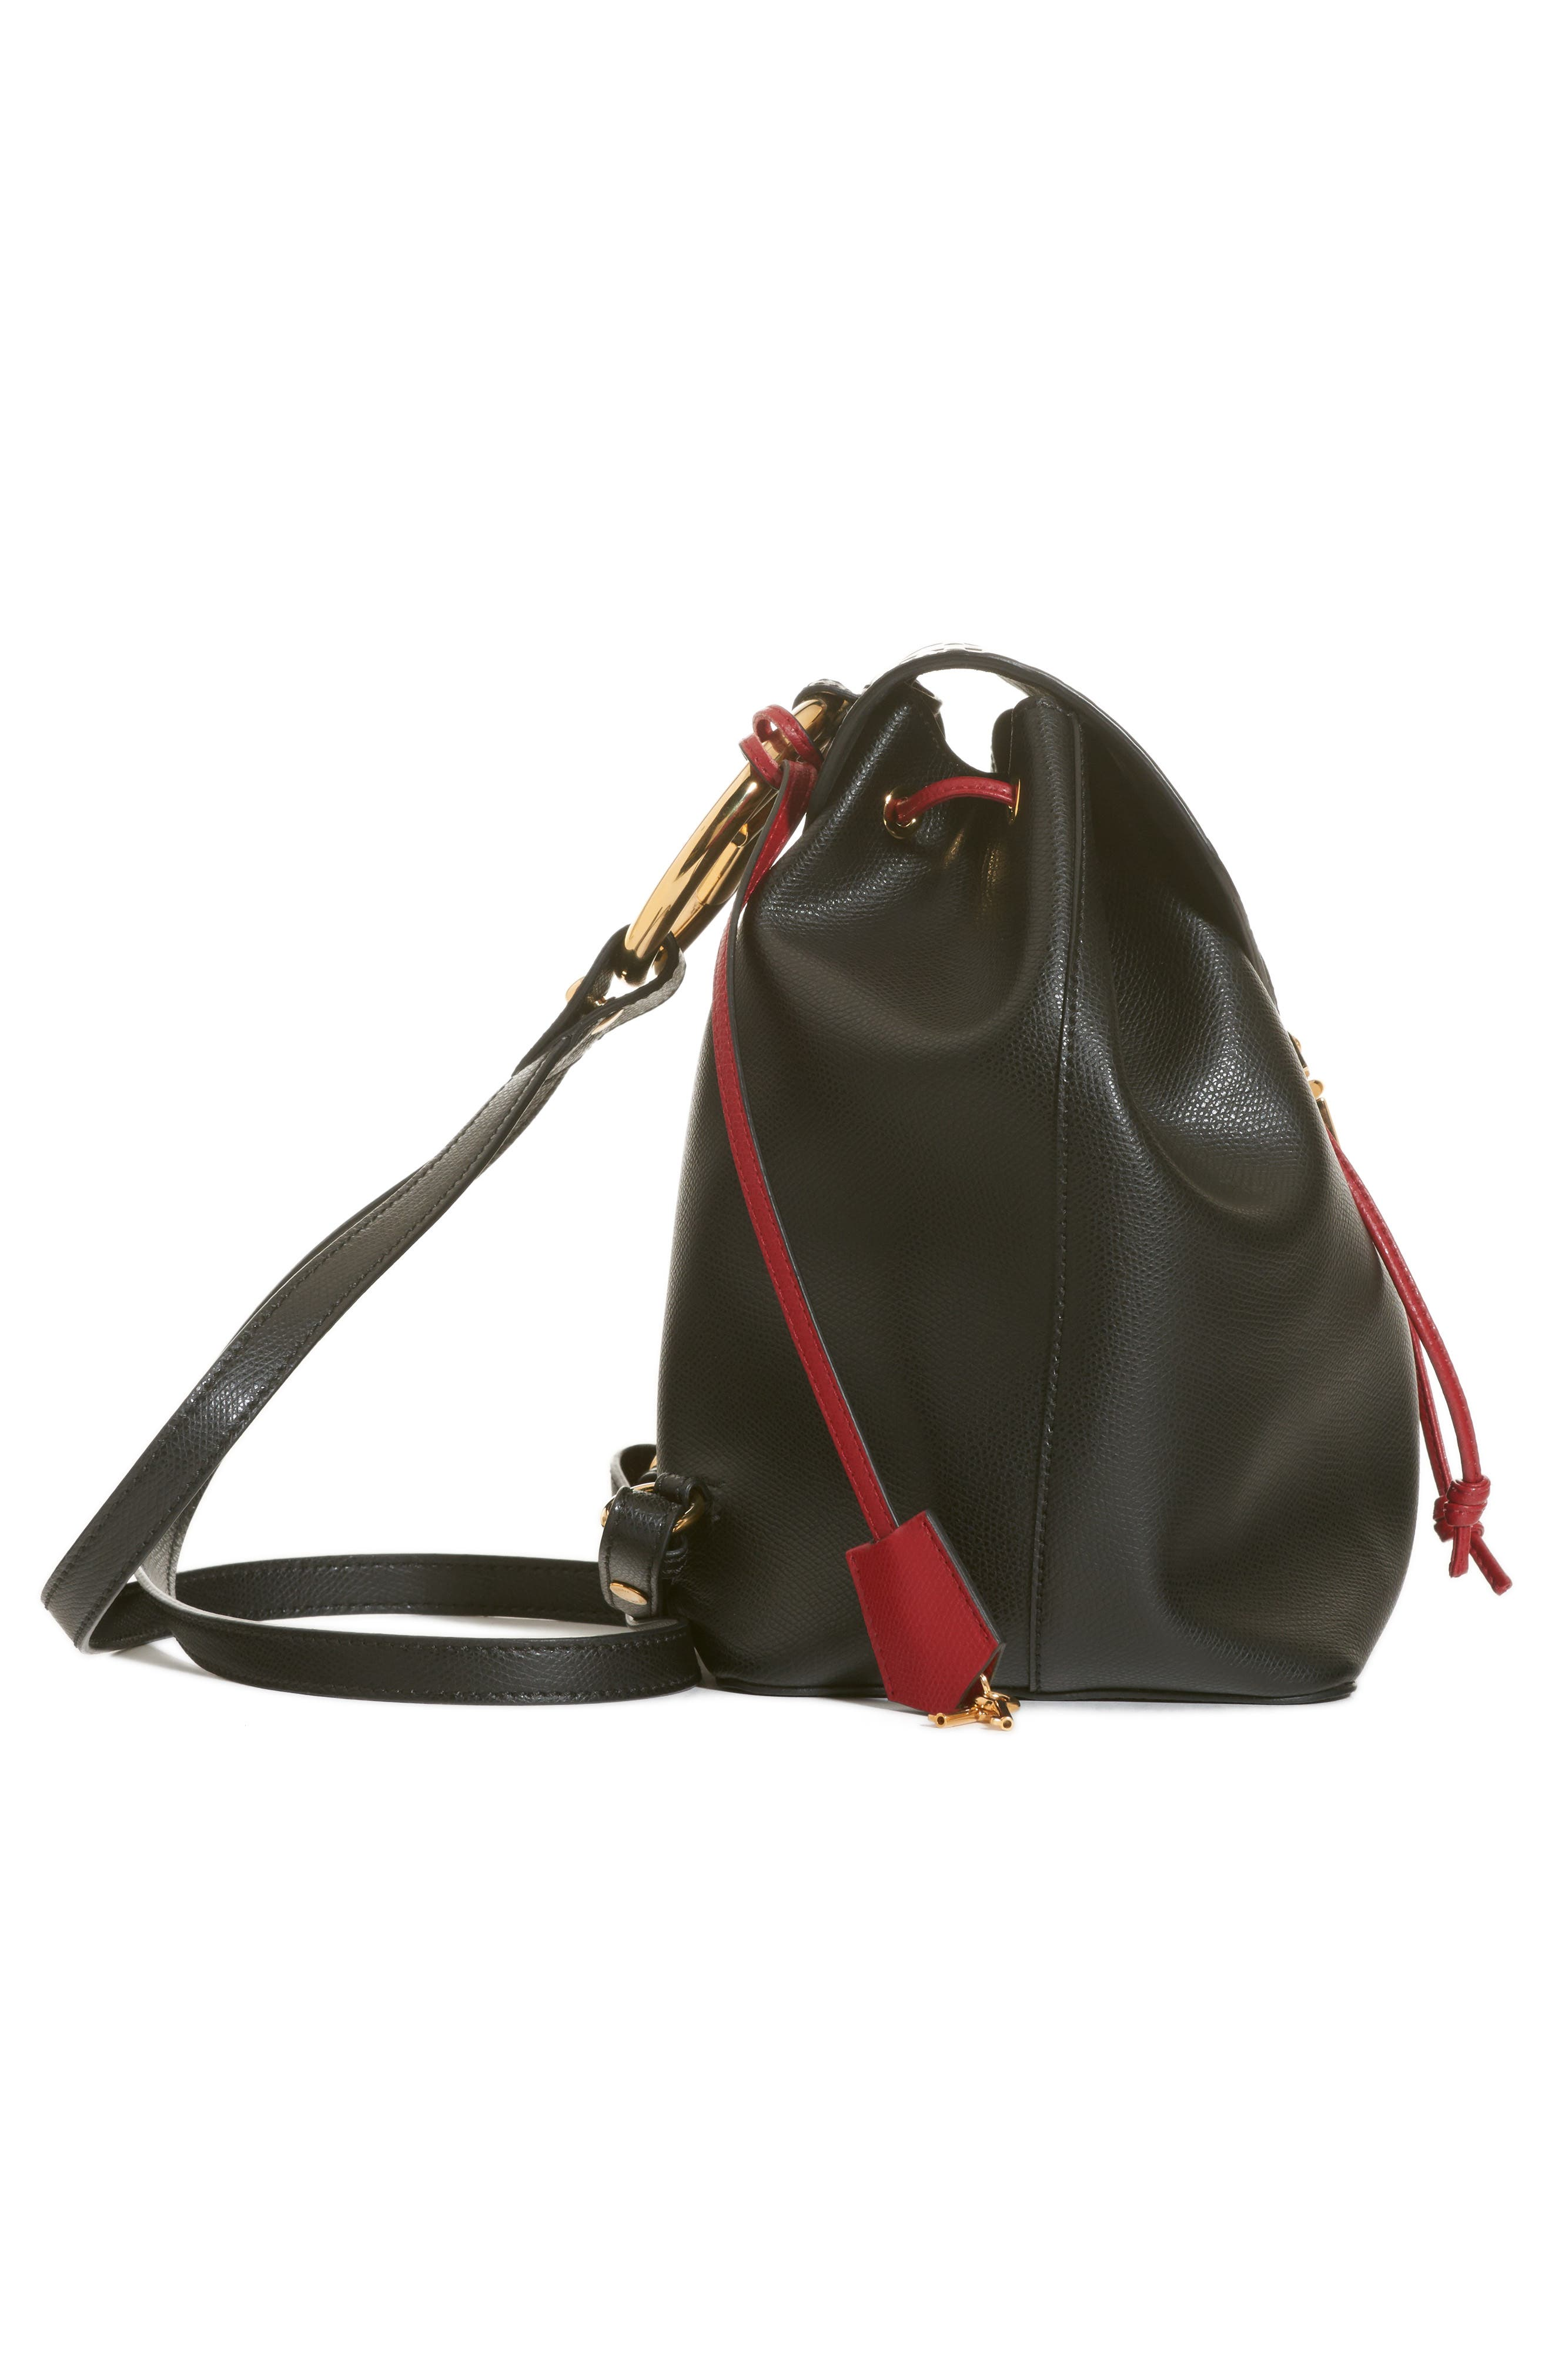 Cruise Bicolor Calfskin Leather Backpack,                             Alternate thumbnail 5, color,                             017